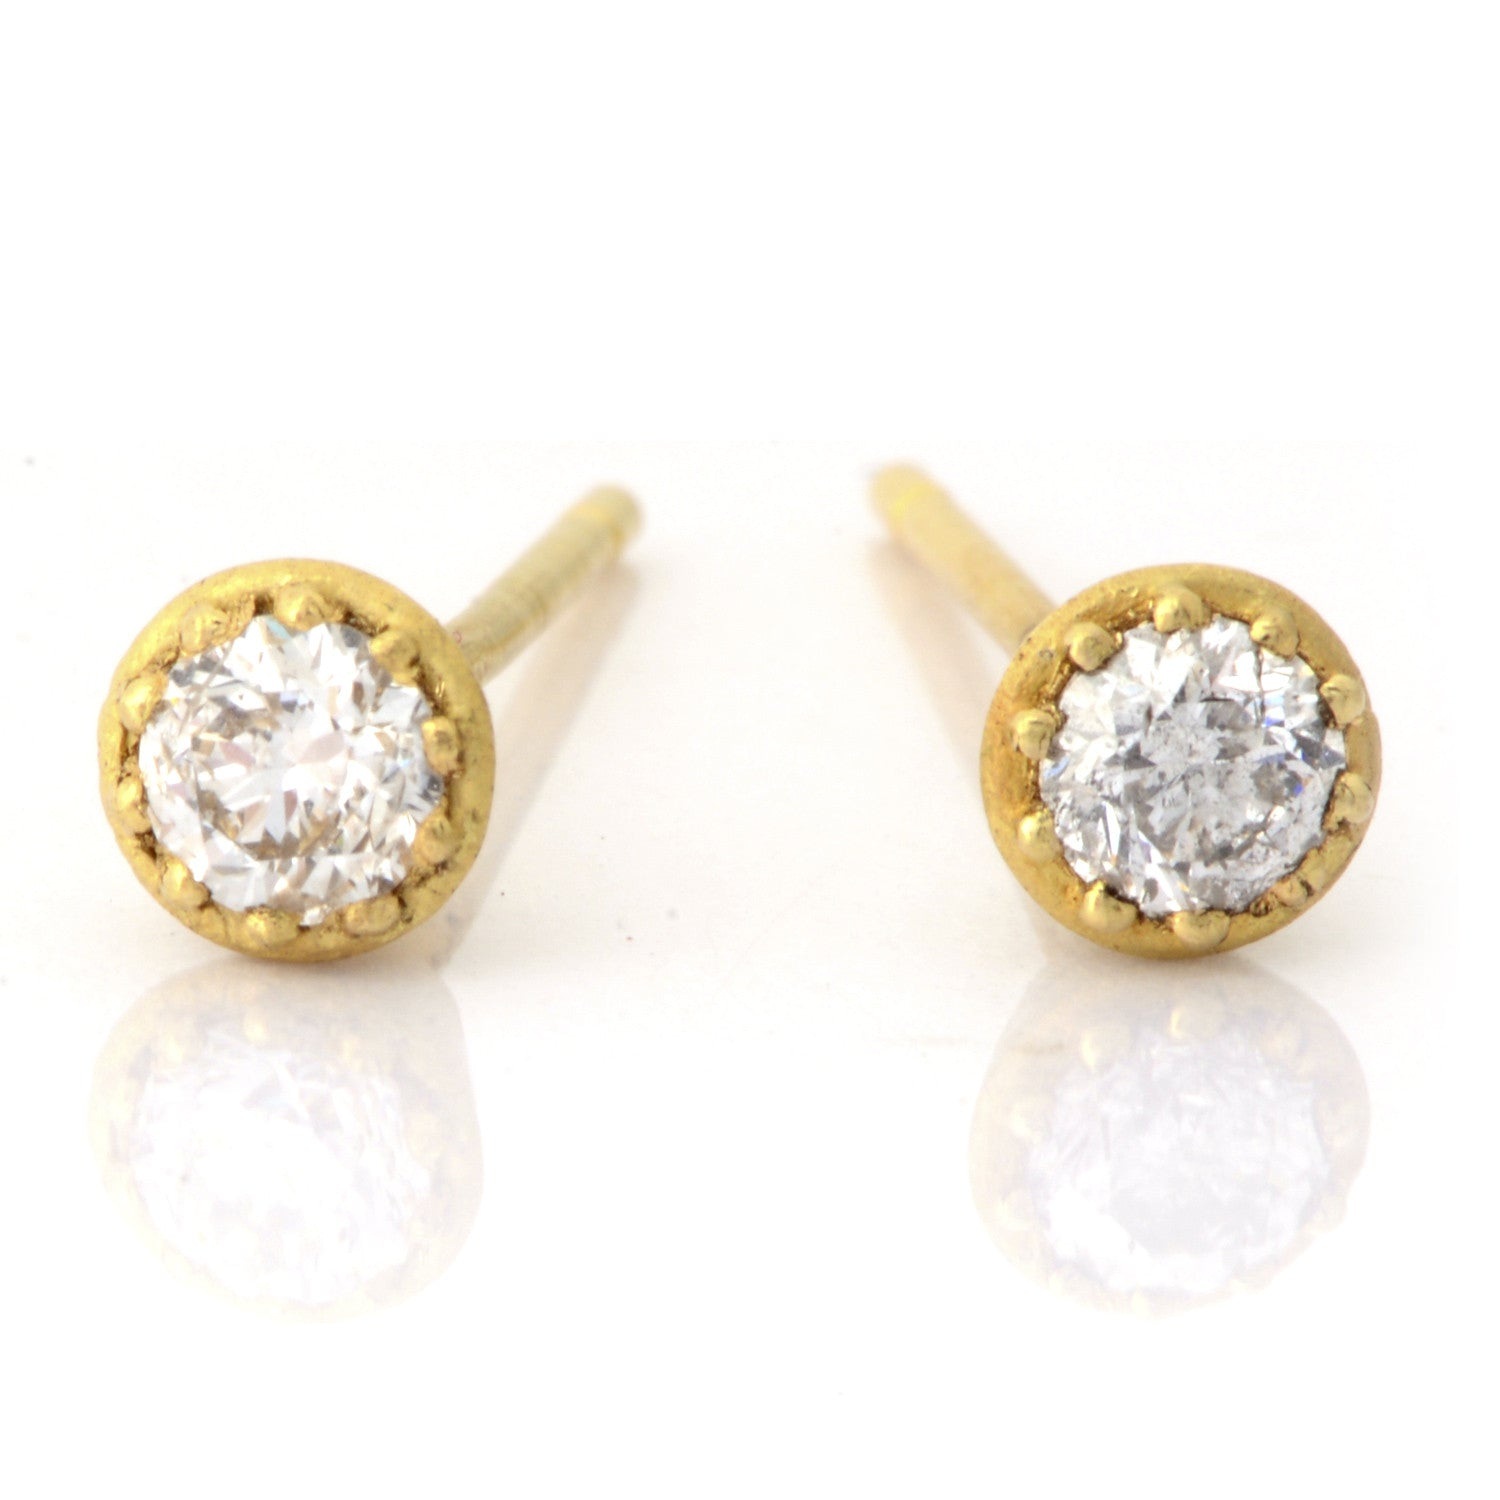 diamond orbistertiusstudsyellow diamonds collections de champagne orbis jewelry earrings stud tiger